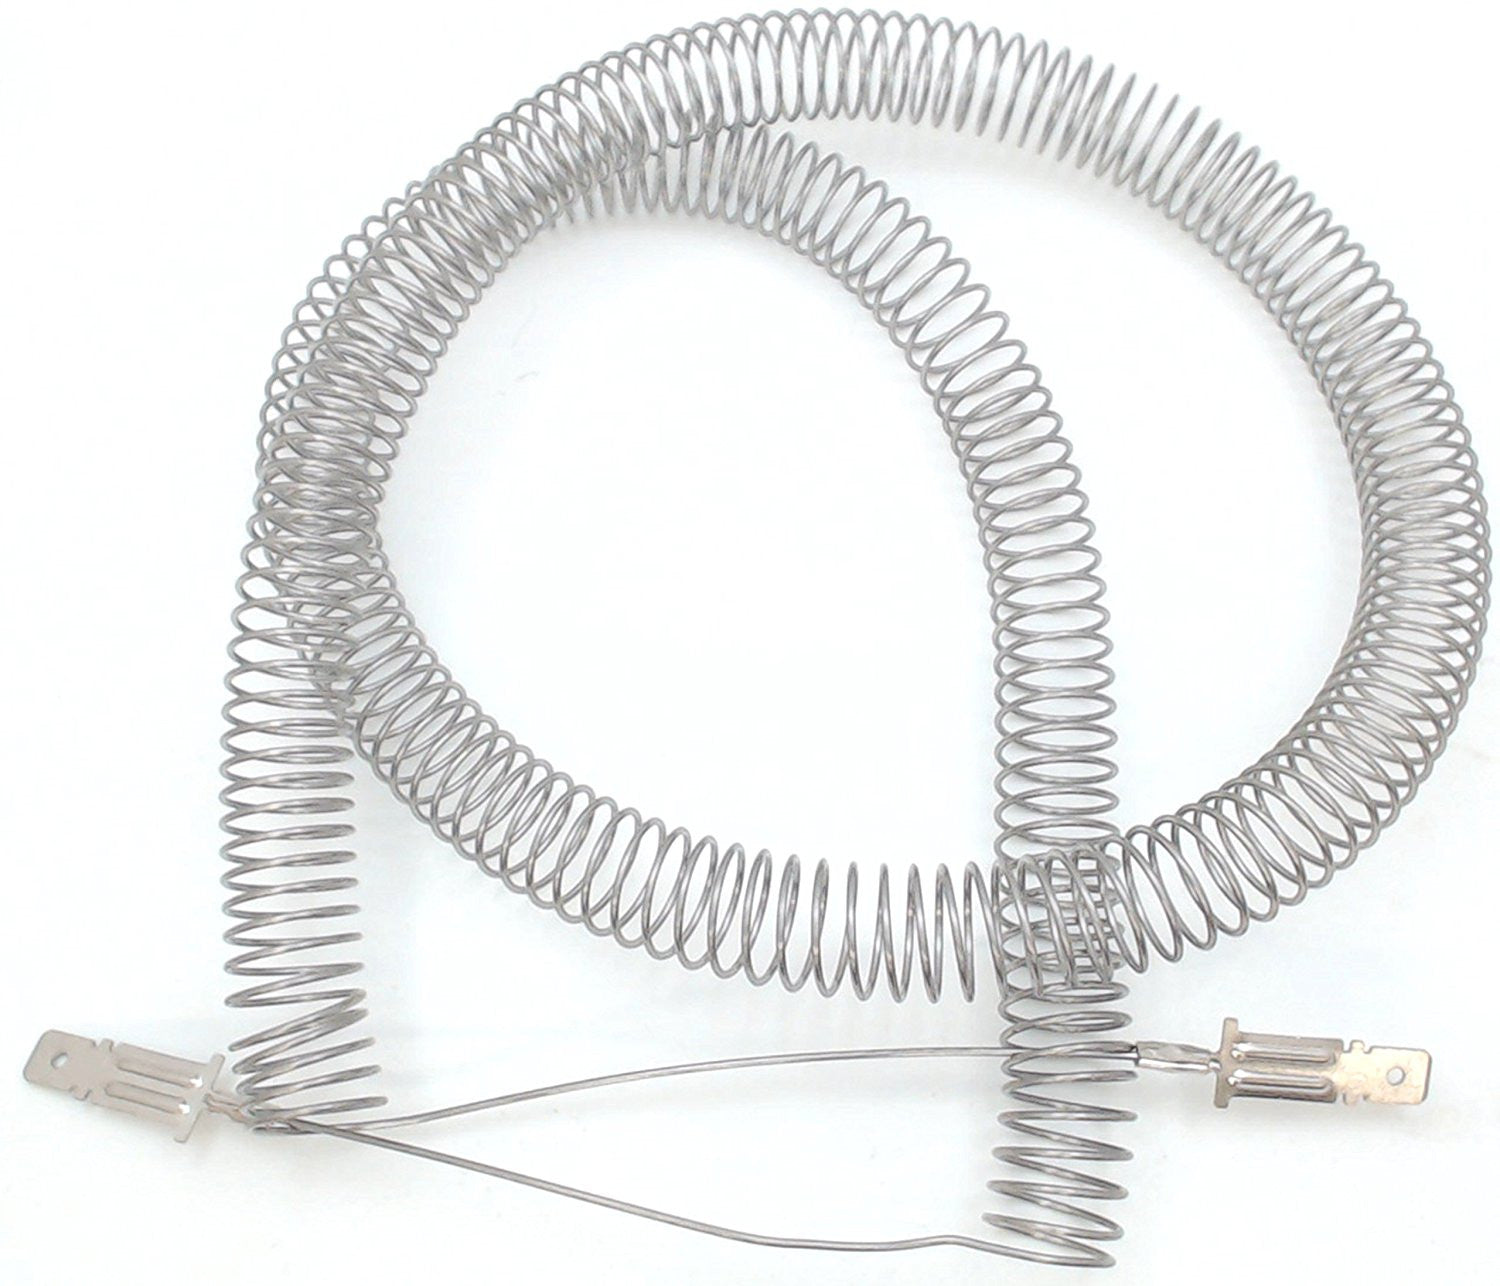 Kenmore / Sears 41799570100 Electric Dryer Heating Element Replacement